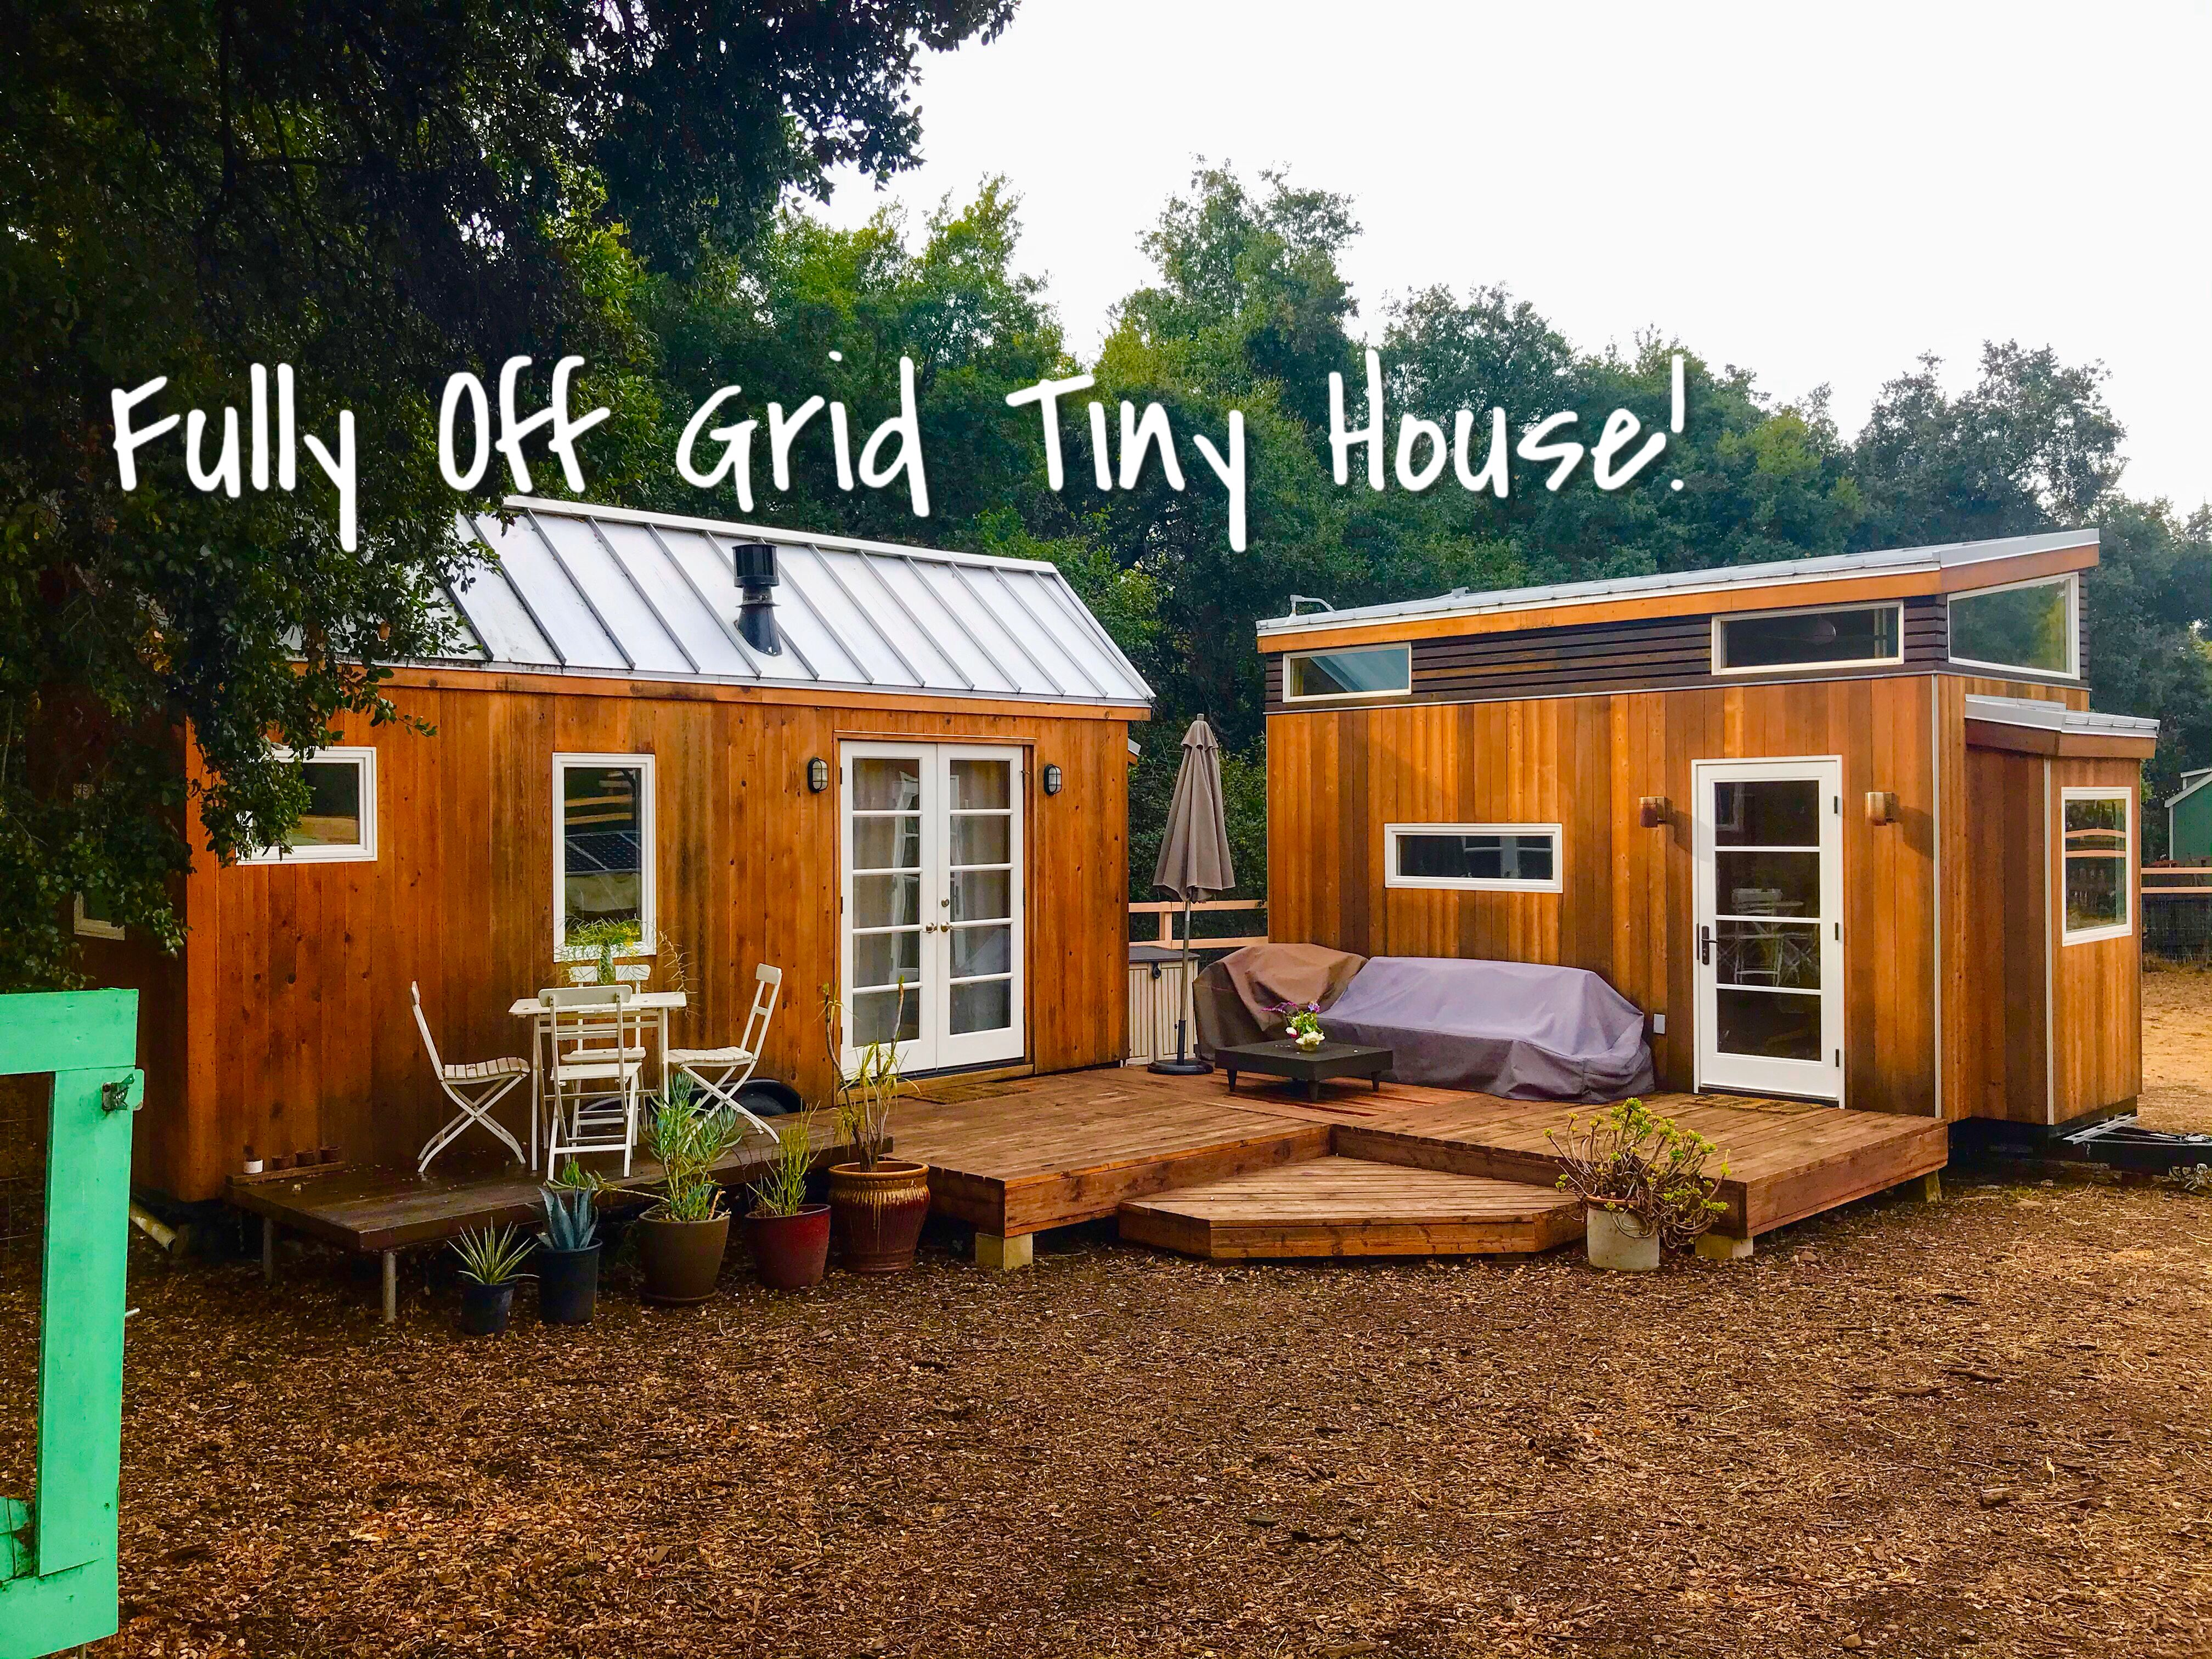 Take A Quick Tour Of The Beautifully Designed Off Grid Sol Haus Designed Built By Vina Lustado In 2020 Tiny House Builders Building Design House Styles